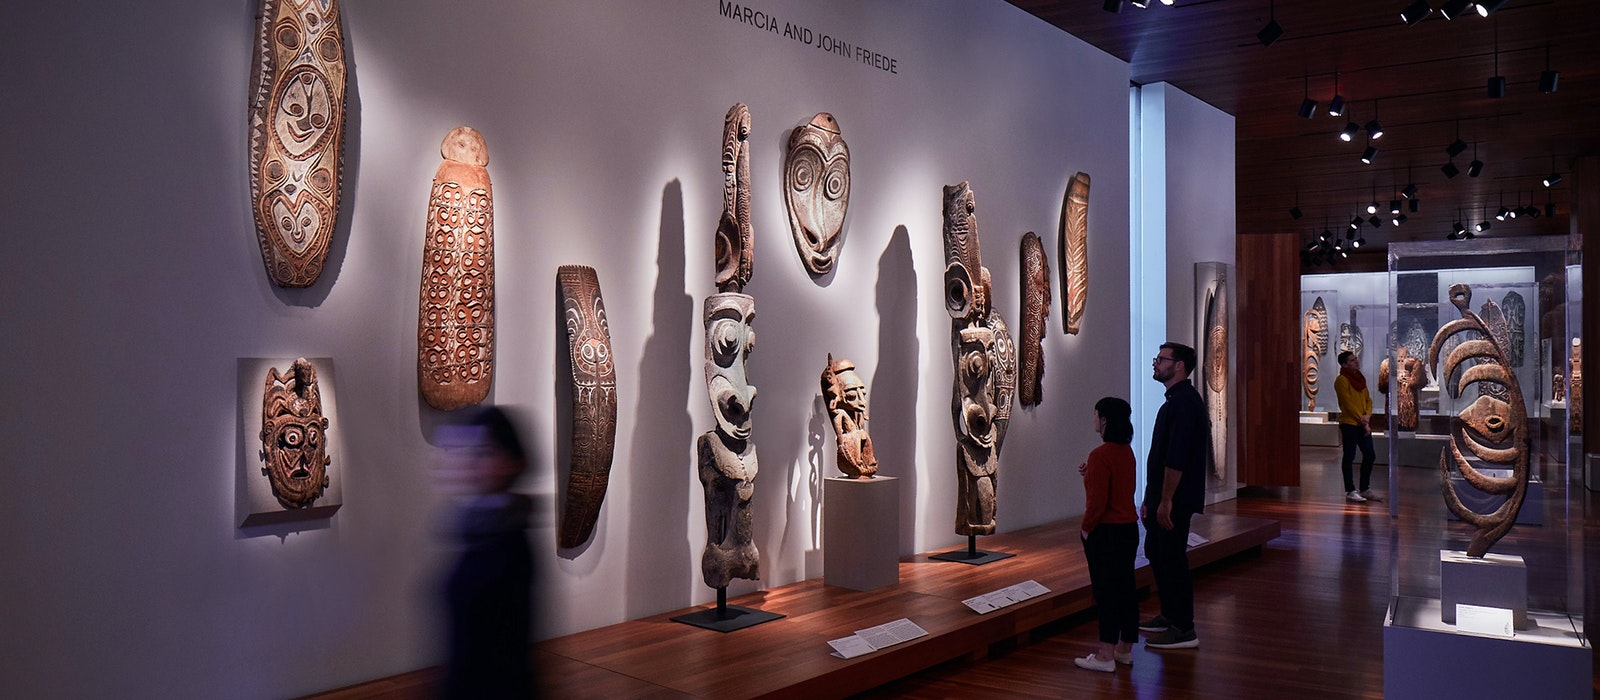 Many of San Francisco's most popular museums, including the De Young Museum, are free if you know when to visit.